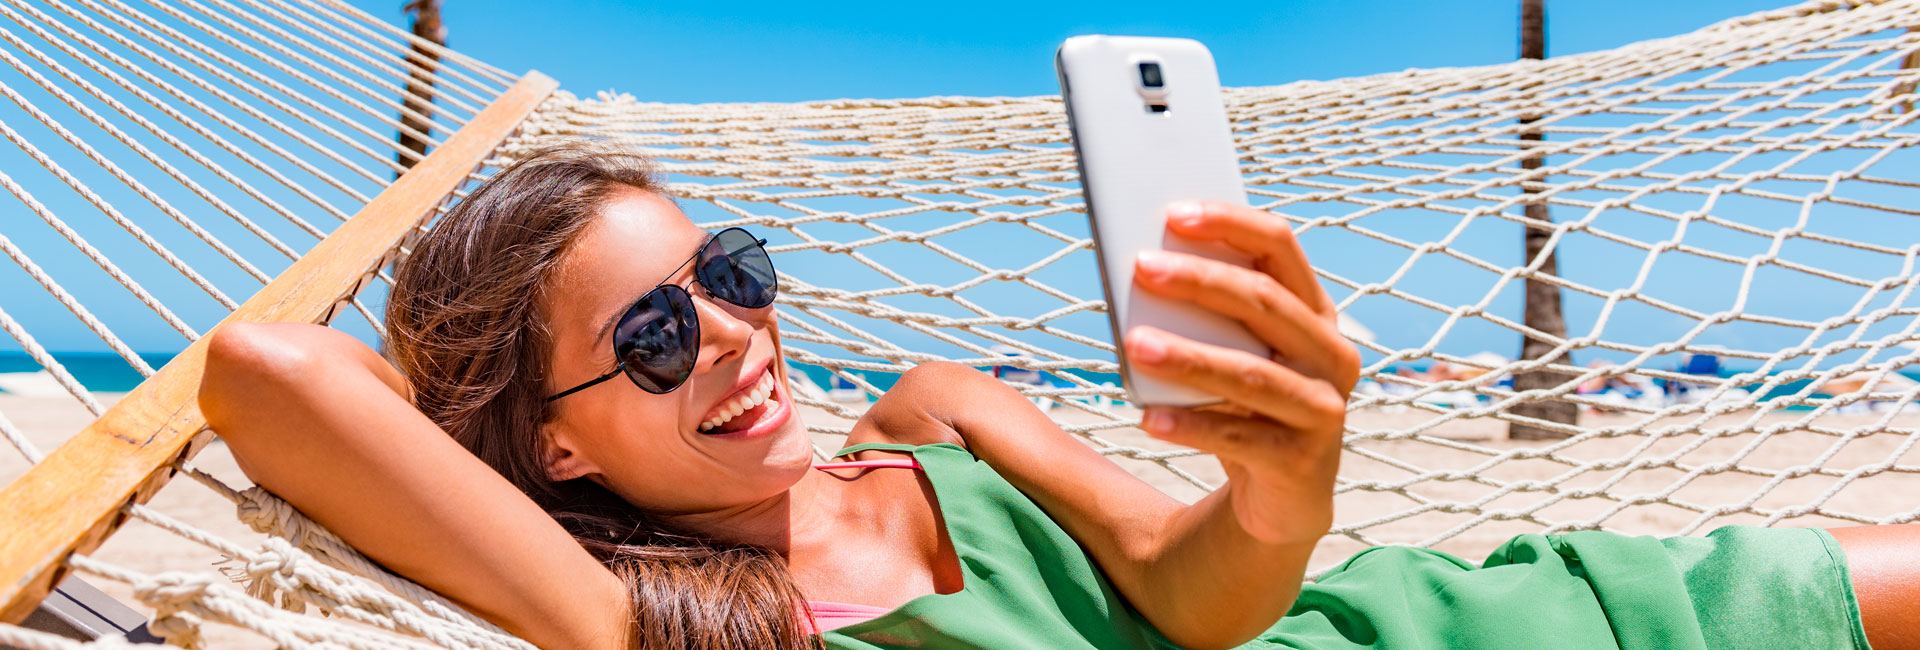 Free wifi and greater security in tourist areas of cabo